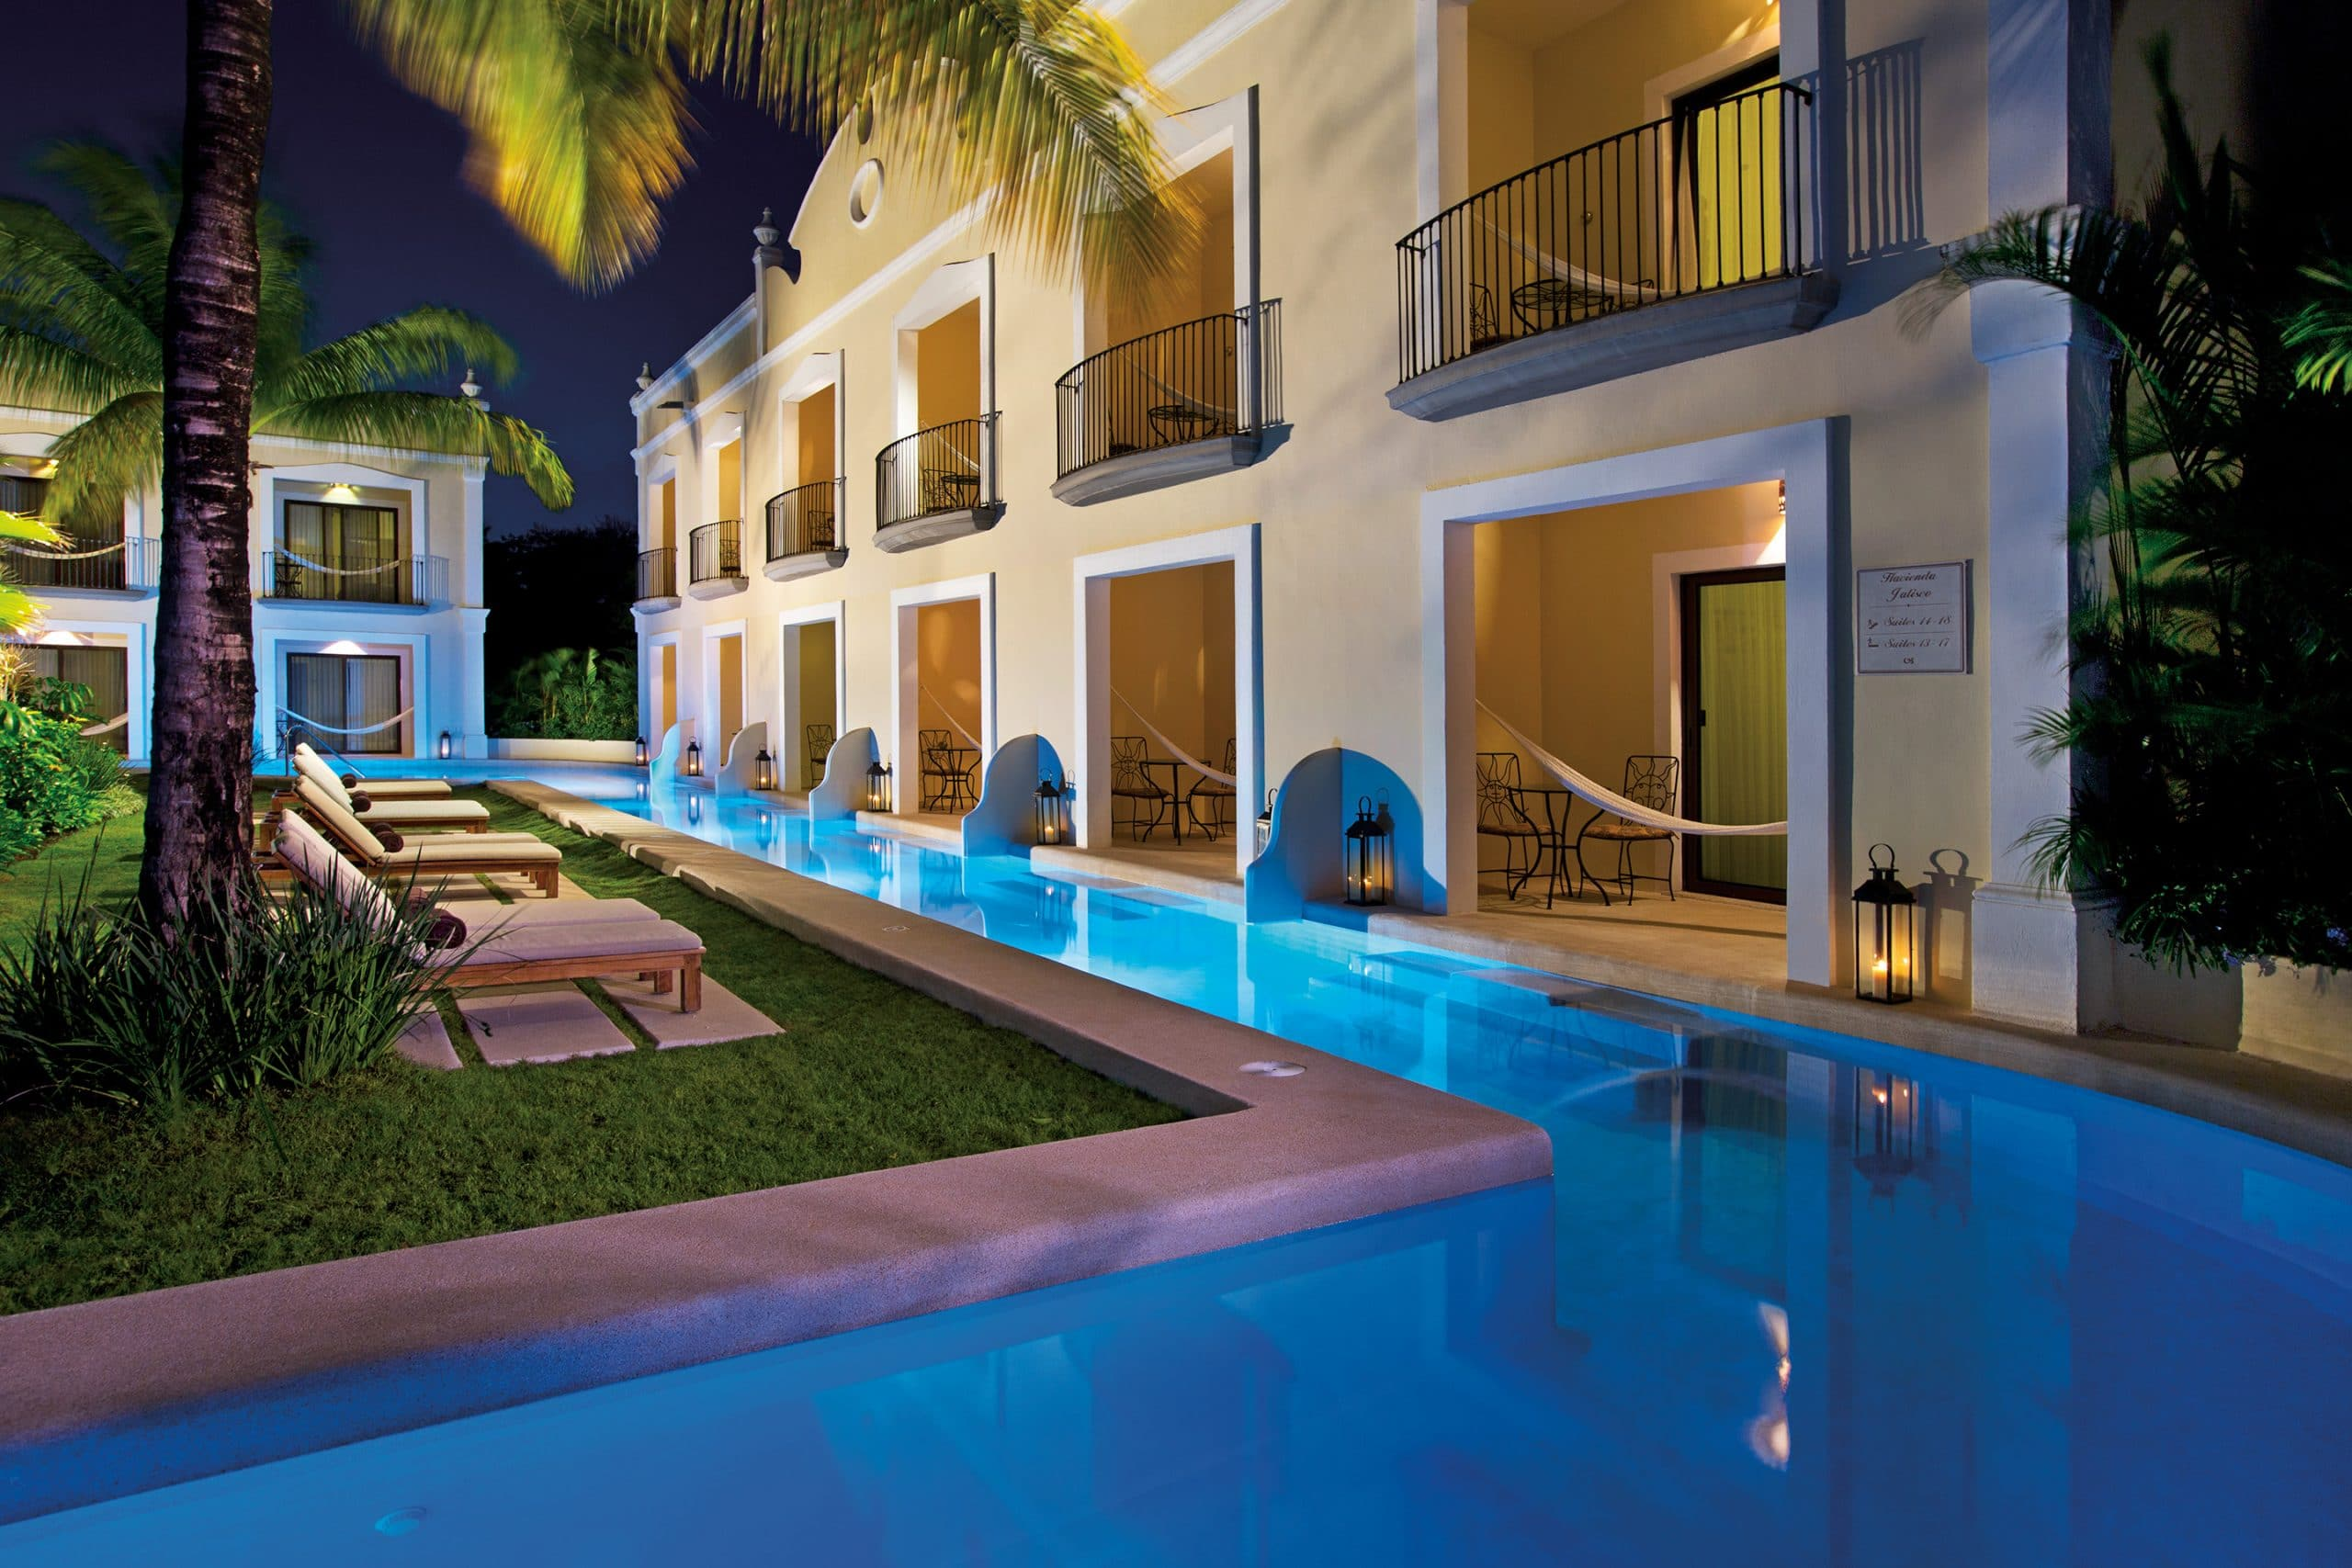 Preferred Club Deluxe Garden Swim Out Adults-Only